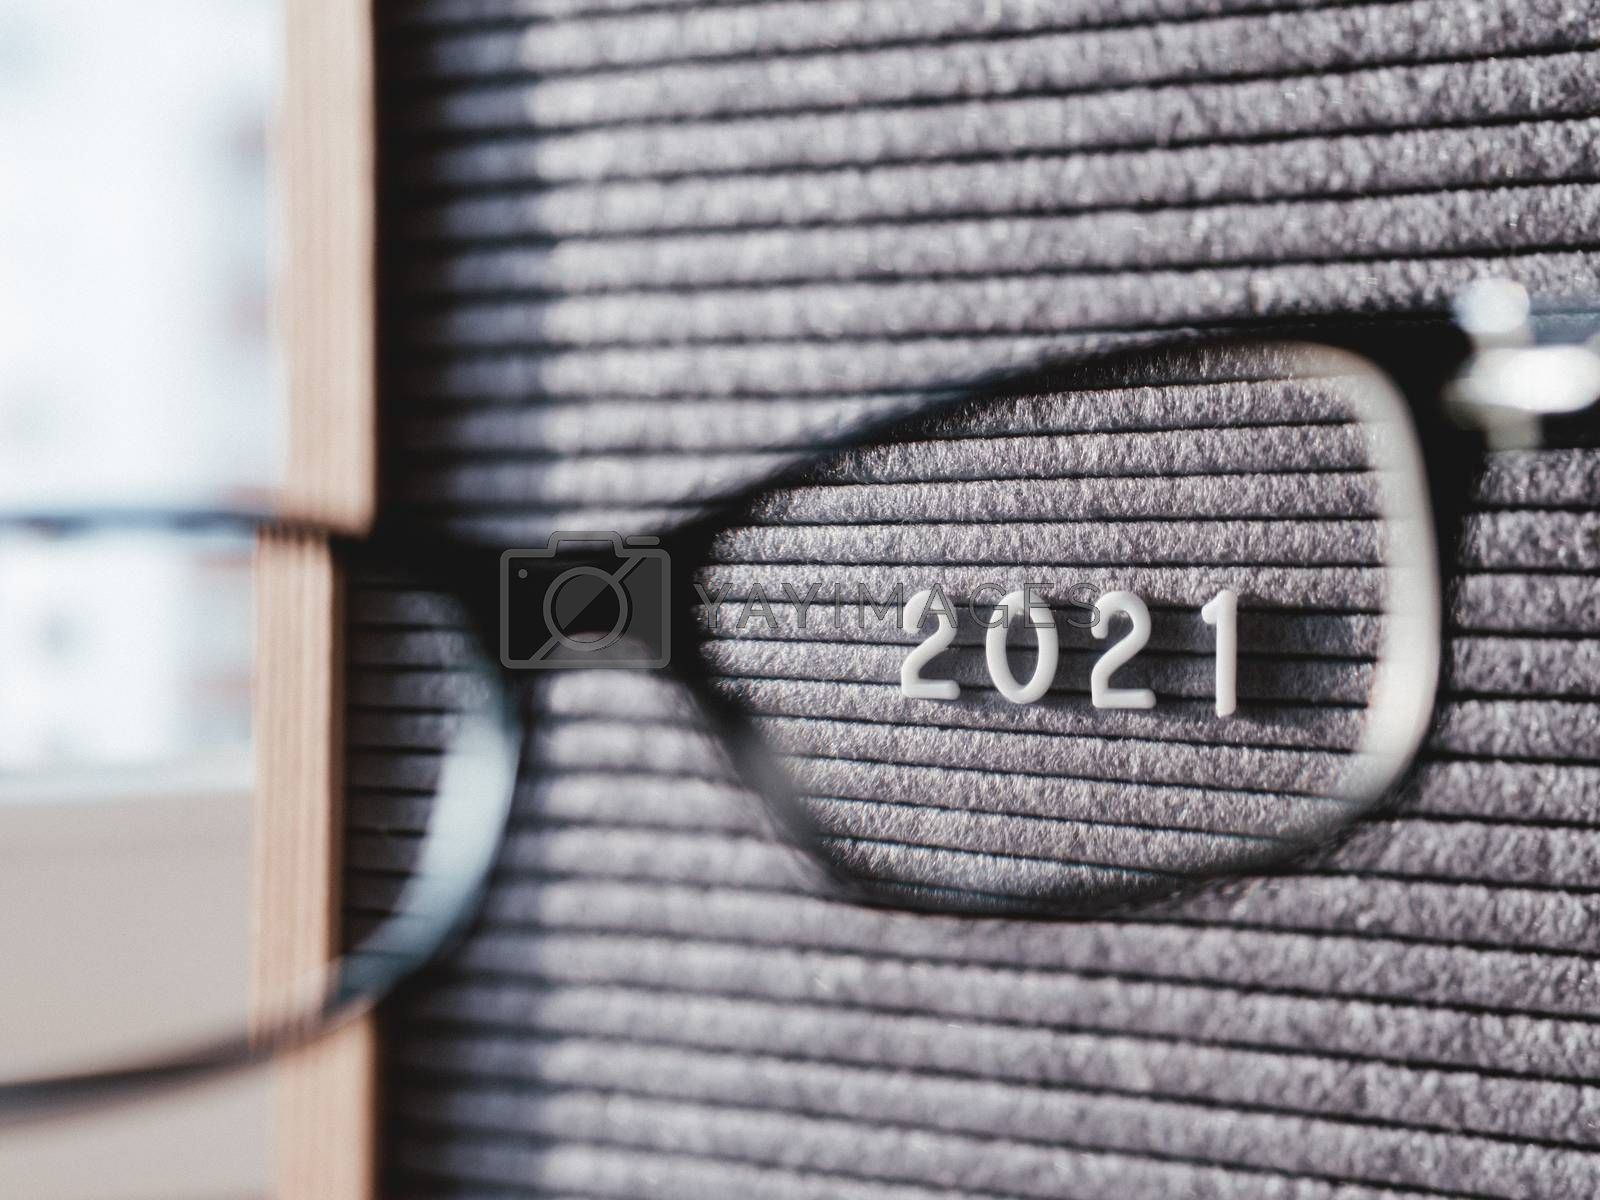 Letterboard with numbers 2021 through eyeglasses. Flat lay concept of 2021 year results. 2021 review. Social, political or economical issue. Closer look on problems and achievements.